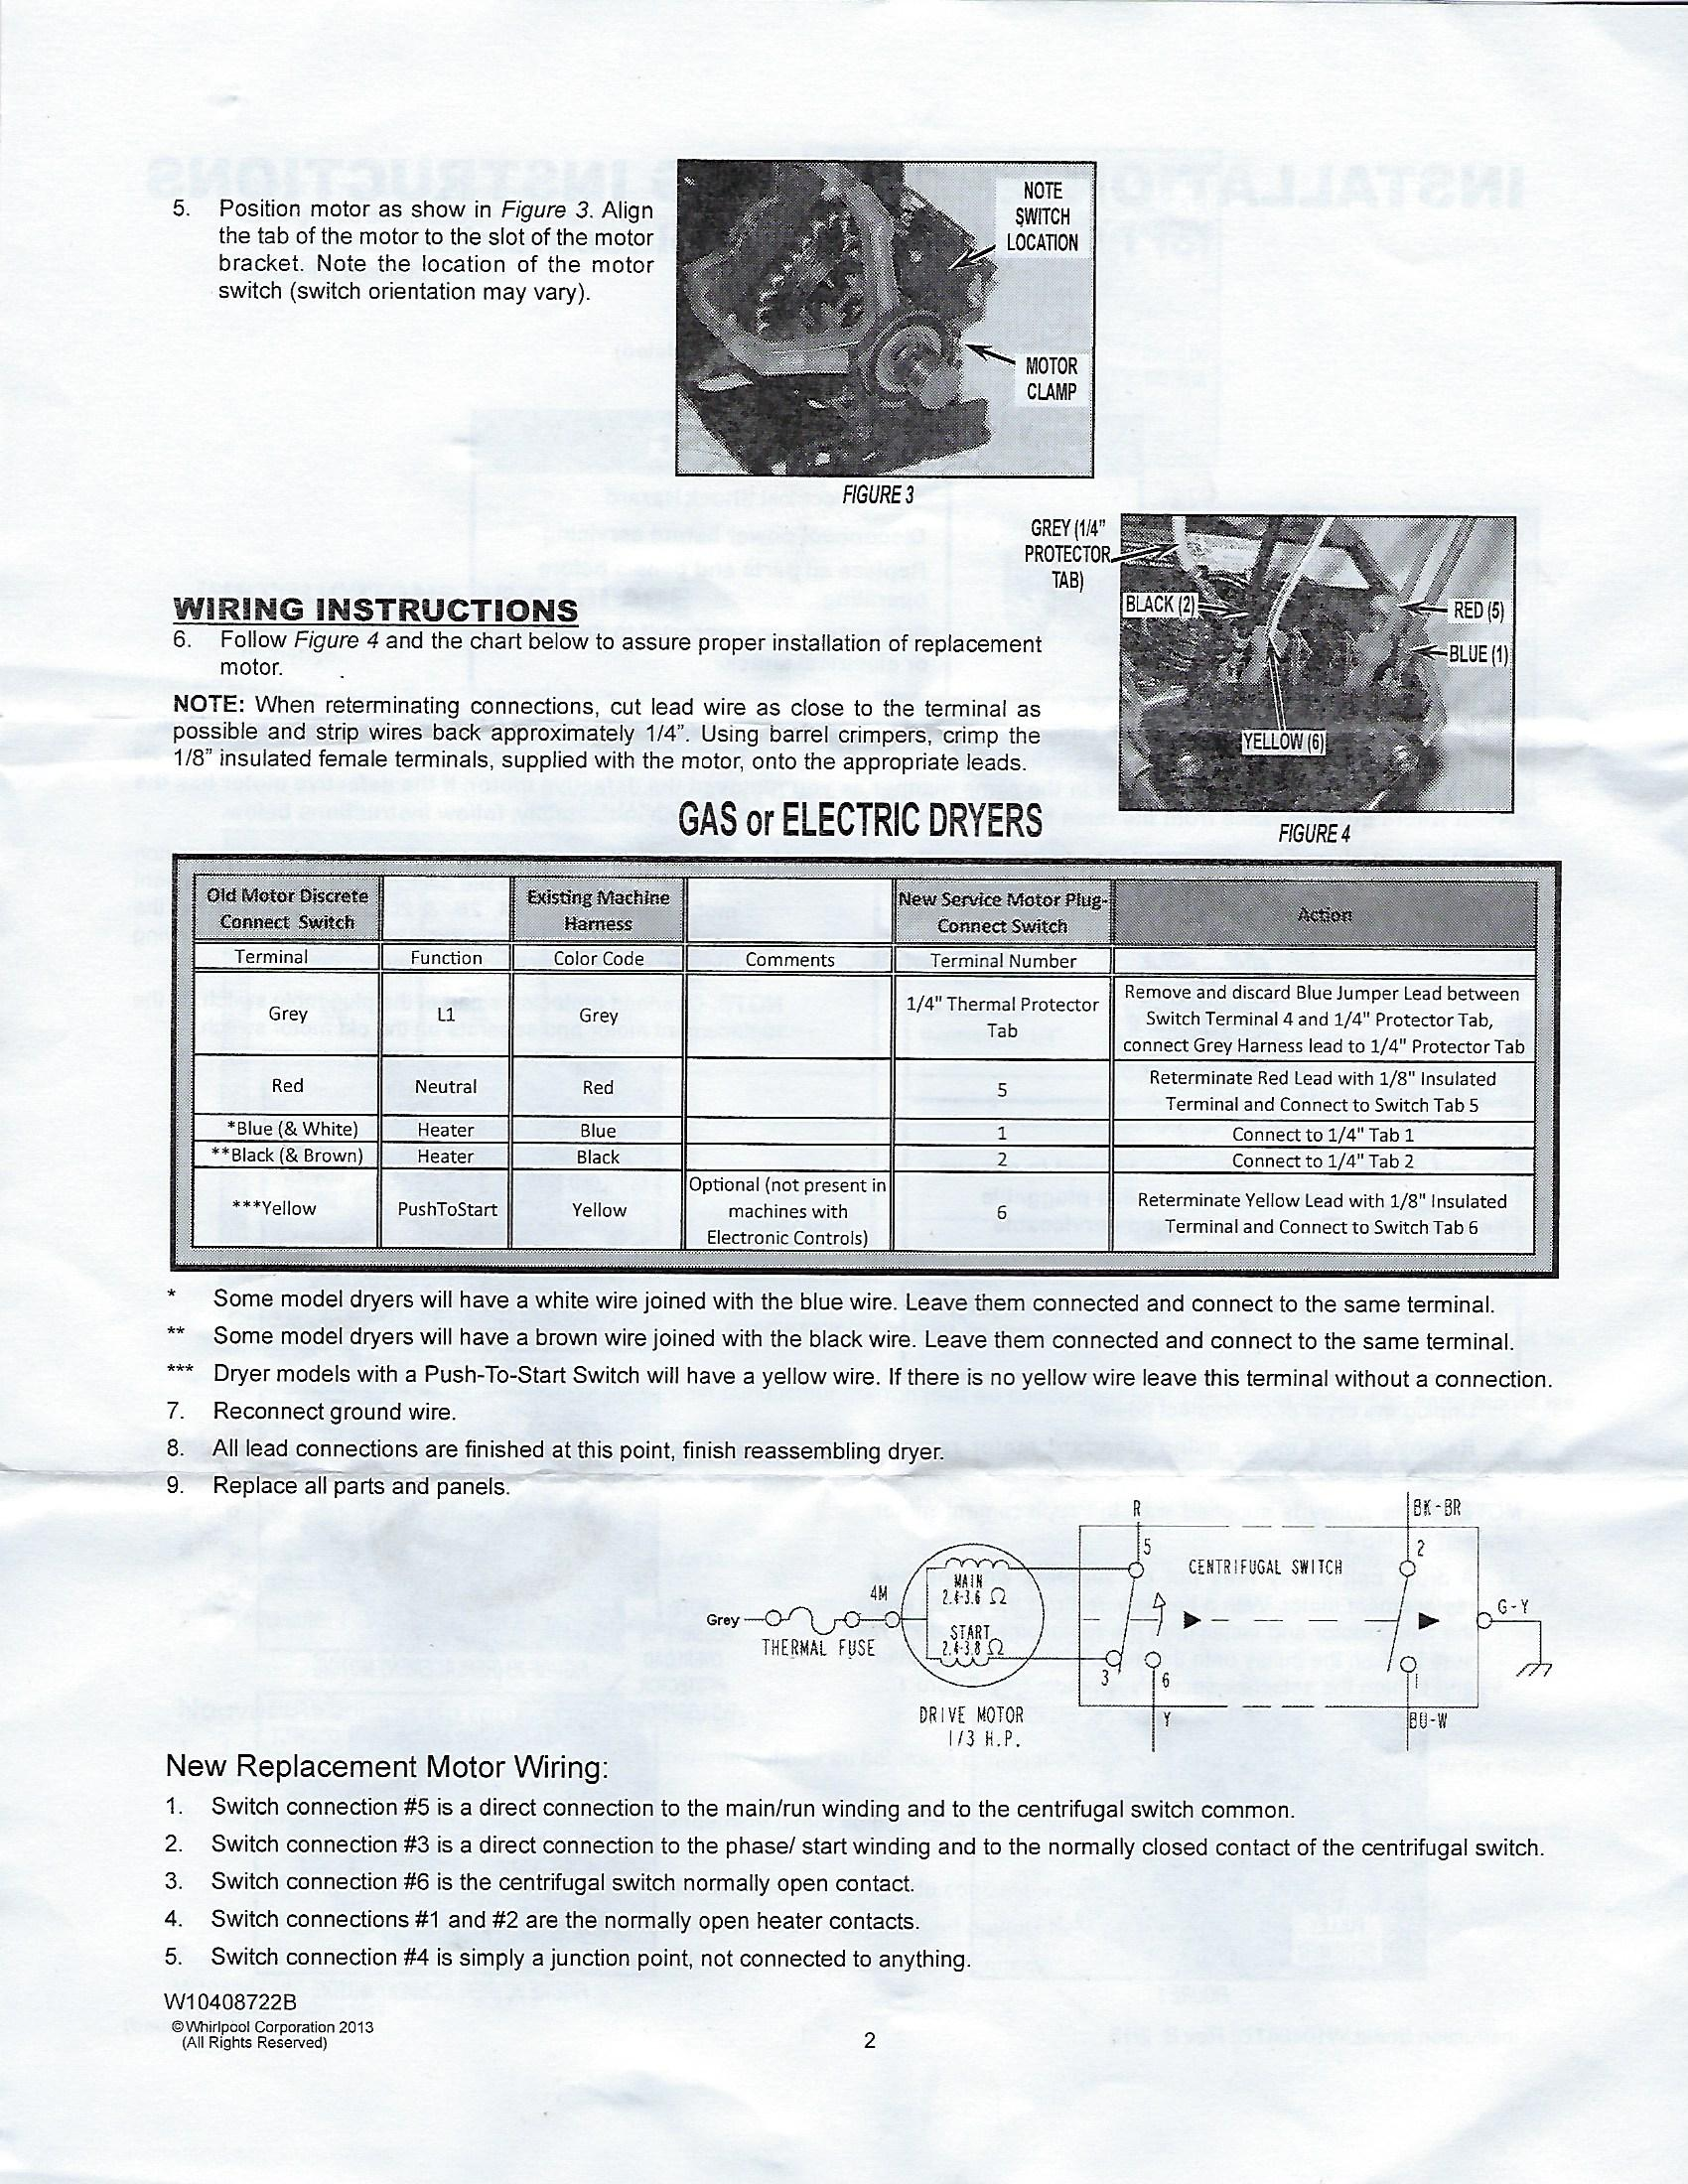 Appliance Motor Wiring Diagram Best Secret Whirlpool Dryer Colored I Purchased A Replacement W10410999 For My Maytag Sears Diagrams Electric Range